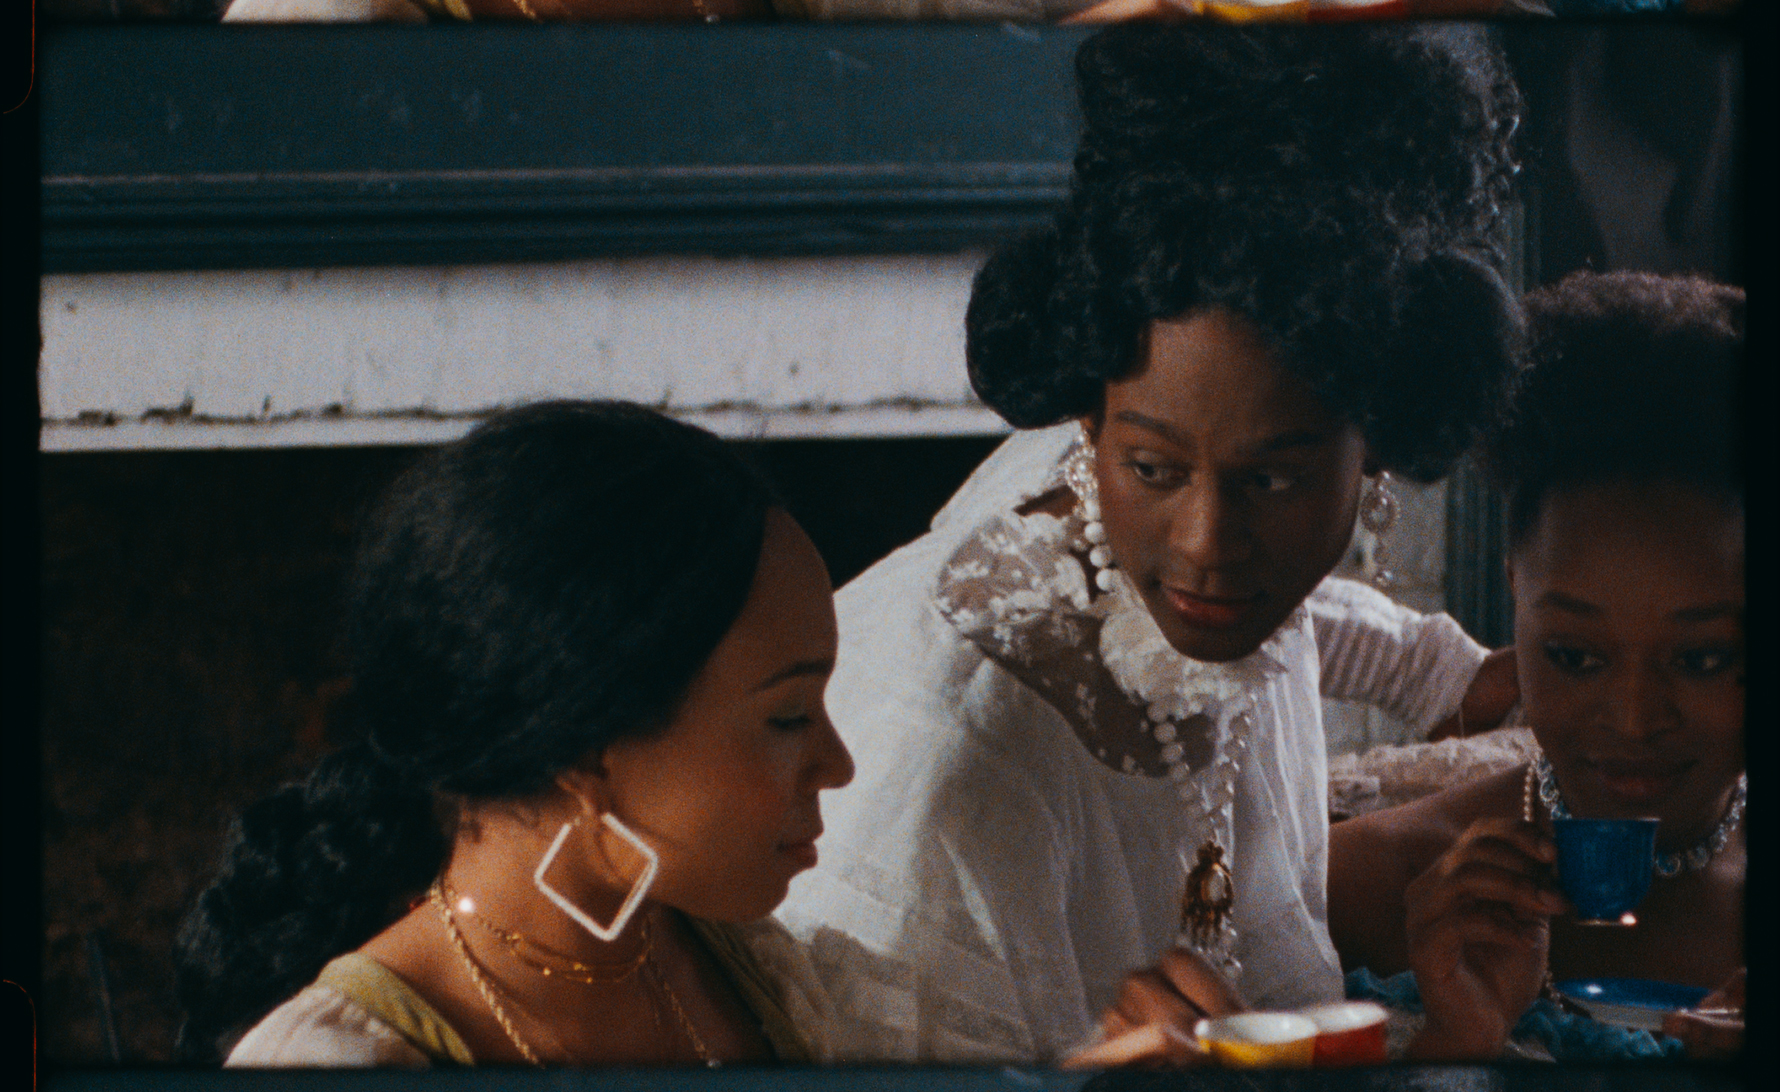 A still from Tourmaline's Salacia that depicts three Black women in early 19th century dress